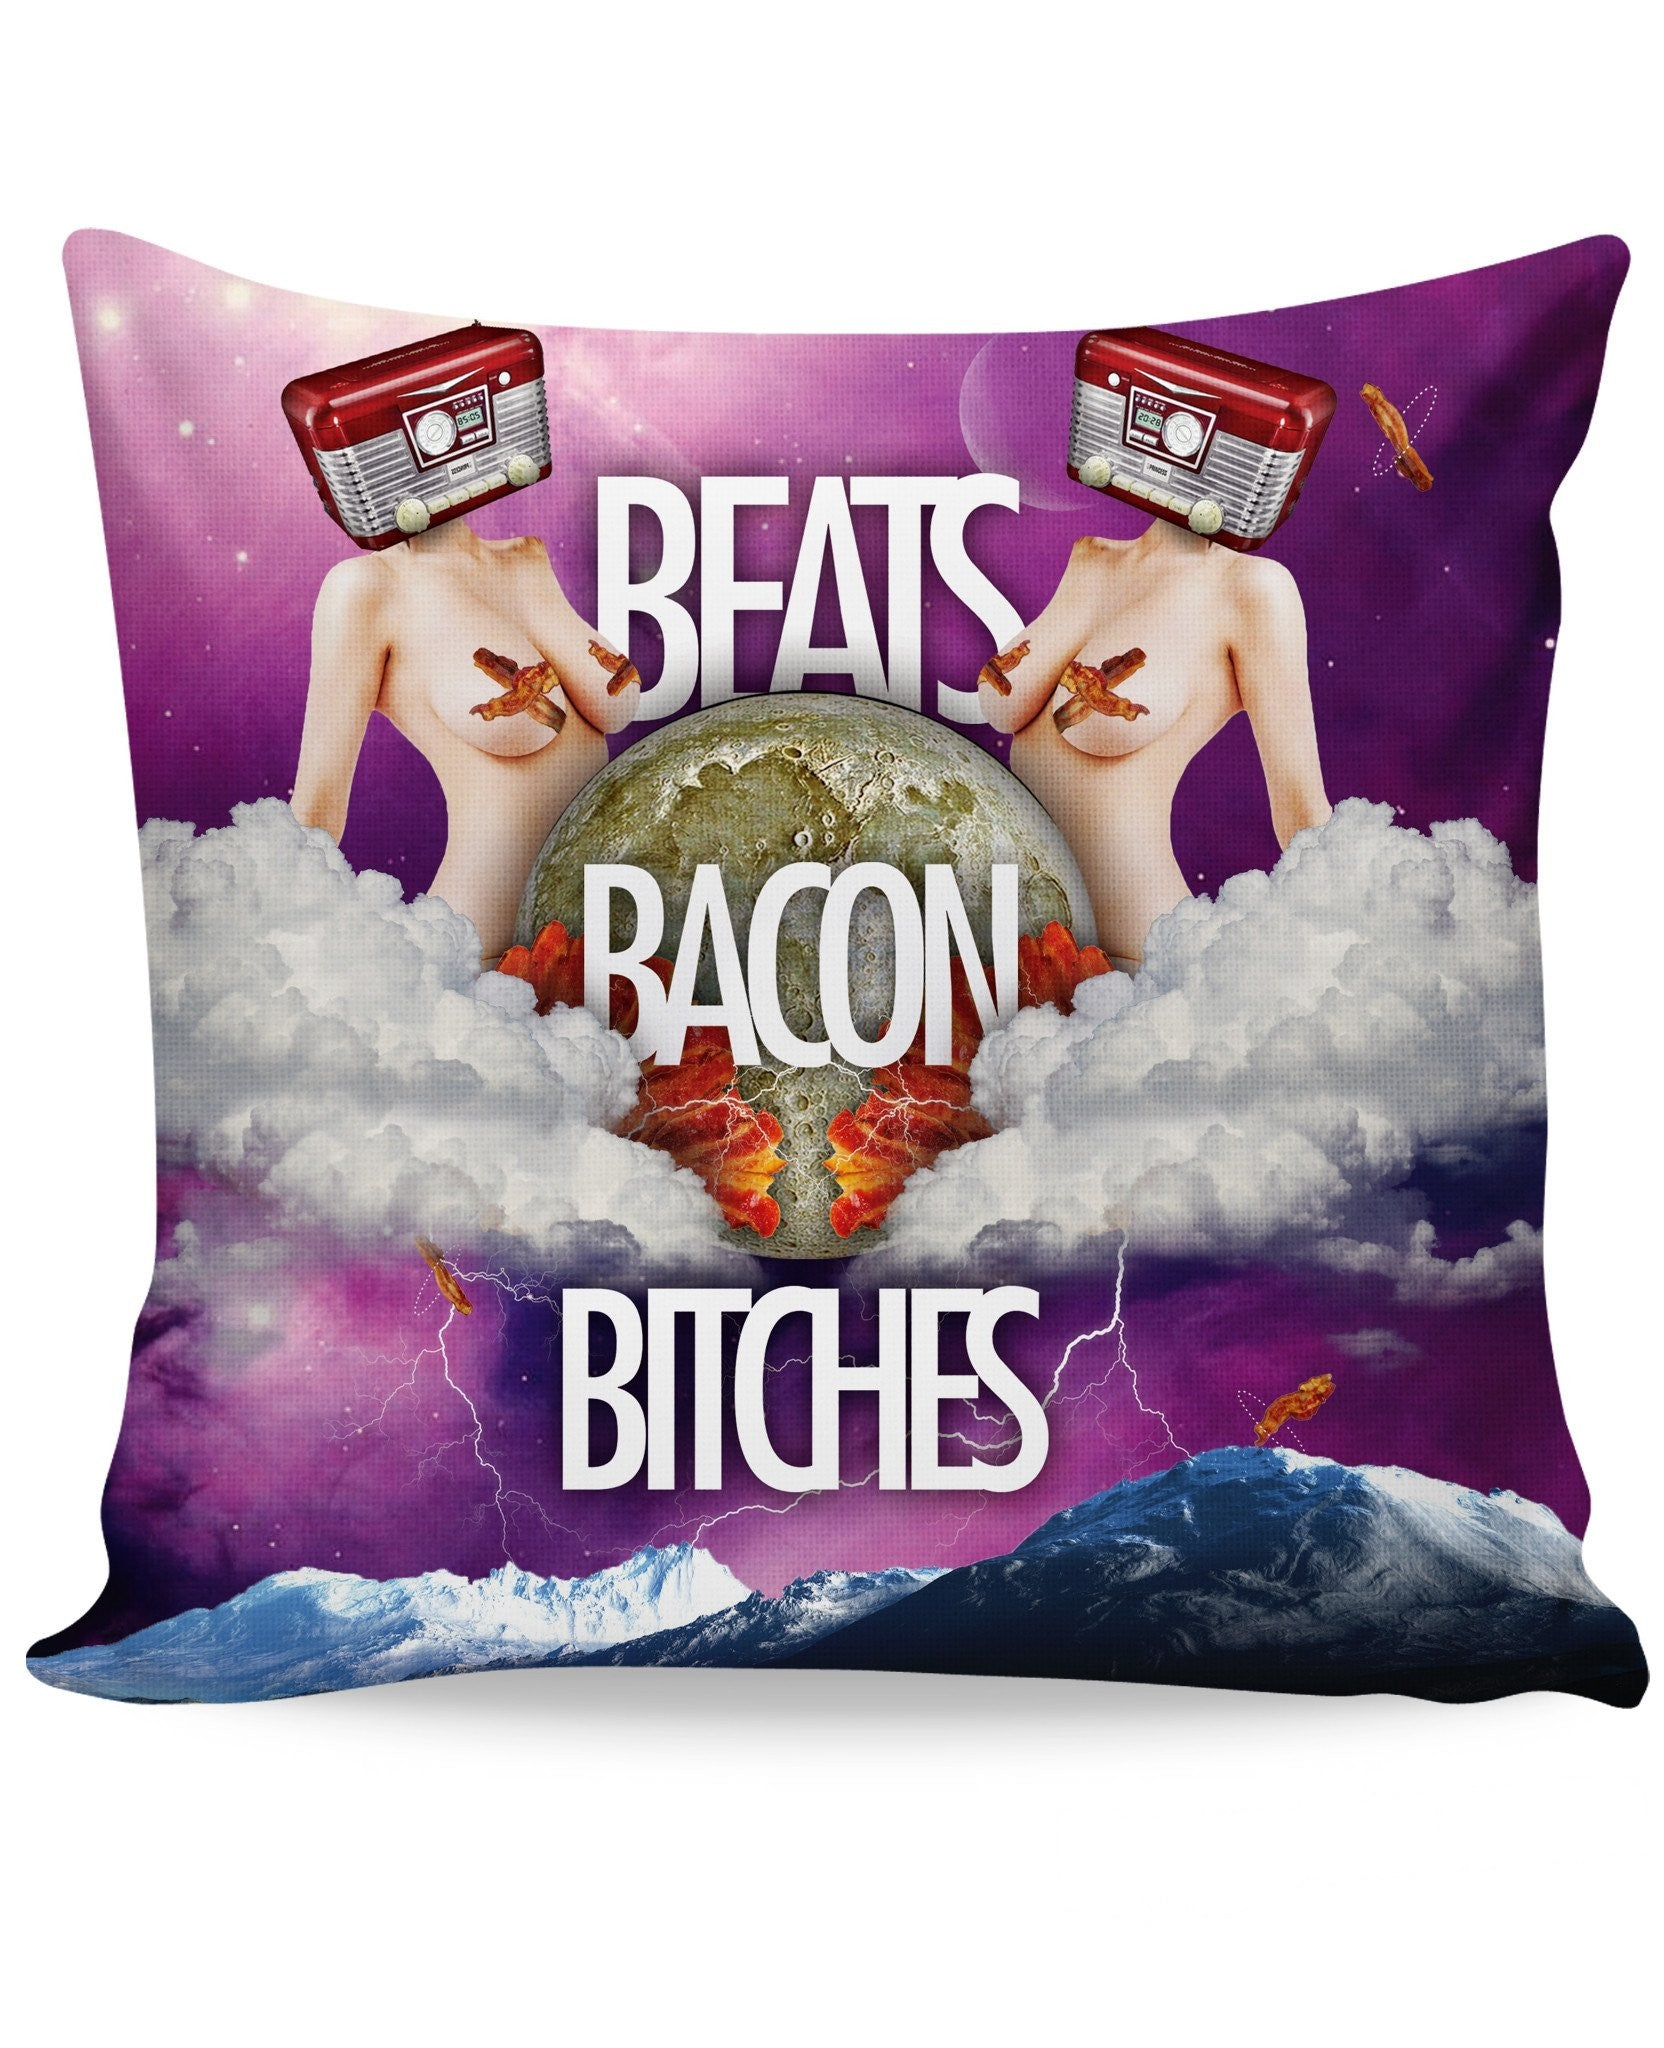 Beats Bacon Bitches Couch Pillow - TShirtsRUS.co